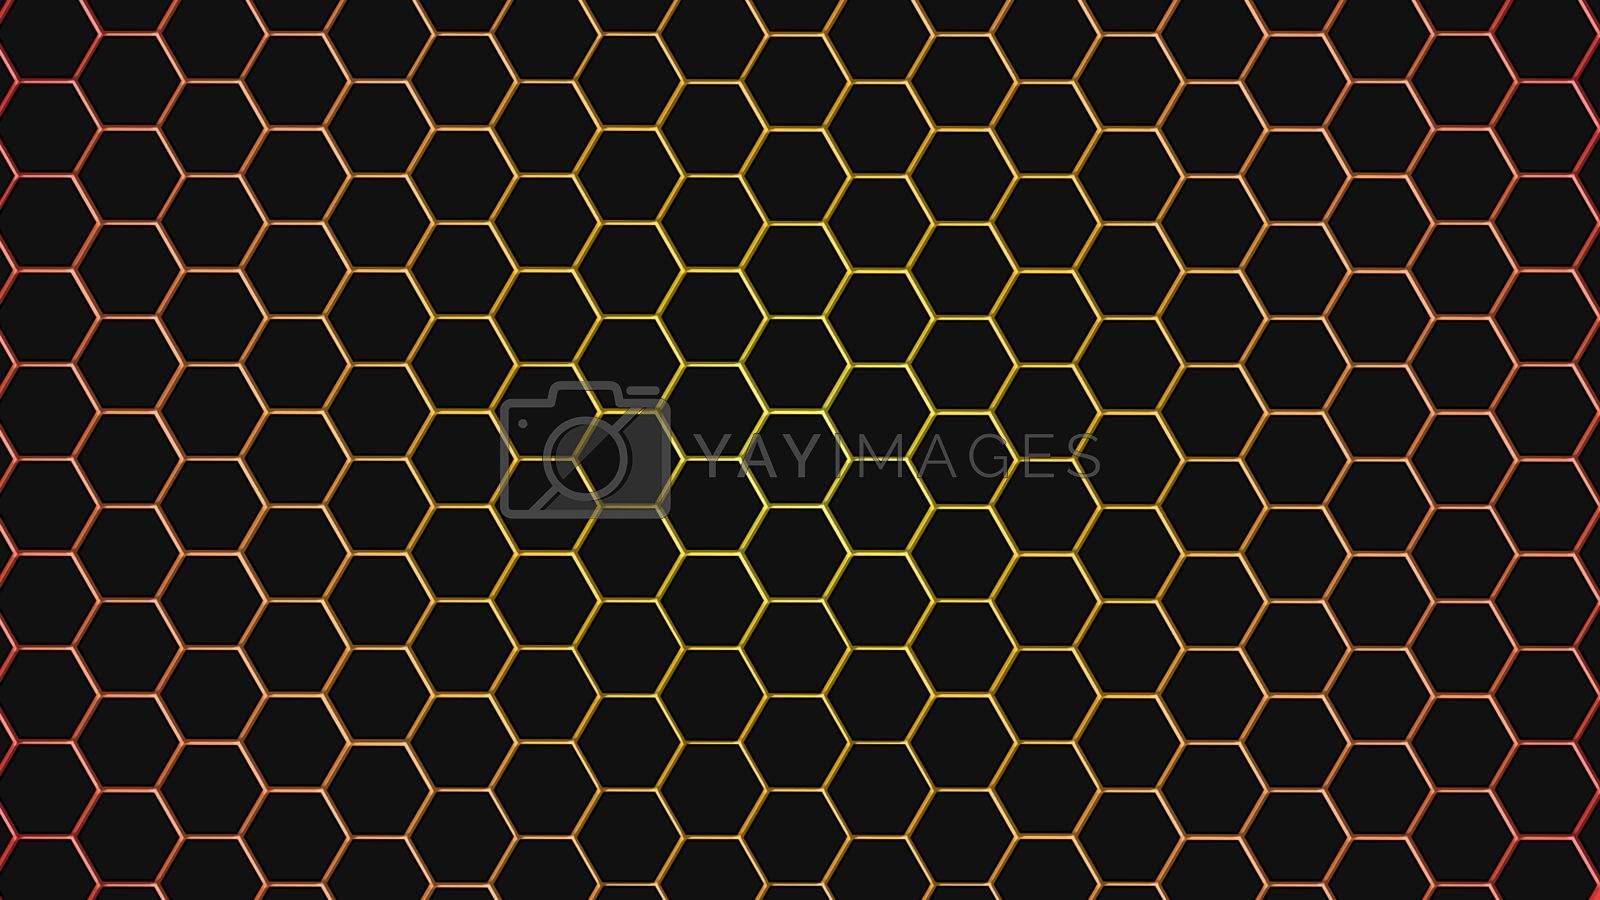 Yellow hexagonal texture. Abstract background for design.